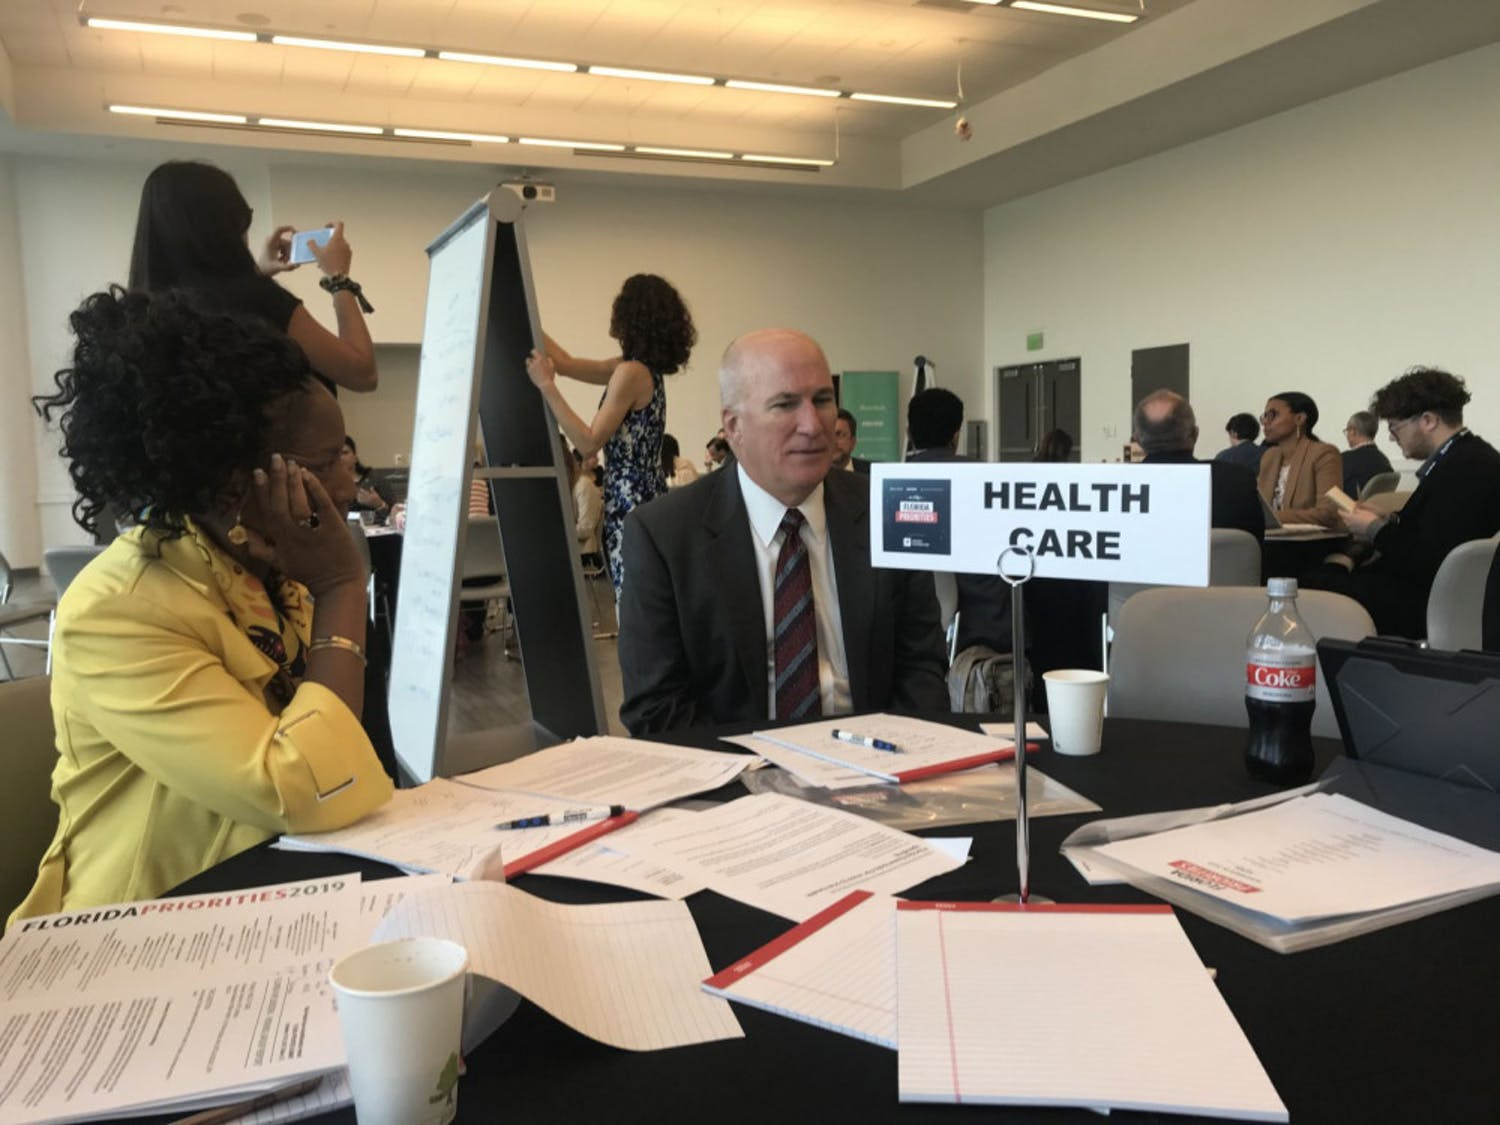 Former Executive Director of We Care Manatee Victoria Kasdan (left) and group CEO of Florida Medical Center and Tenet Health Miami-Dade Group Jeffrey Welch (right) discuss ways Florida can improve its healthcare system during the Florida Priorities Summit.